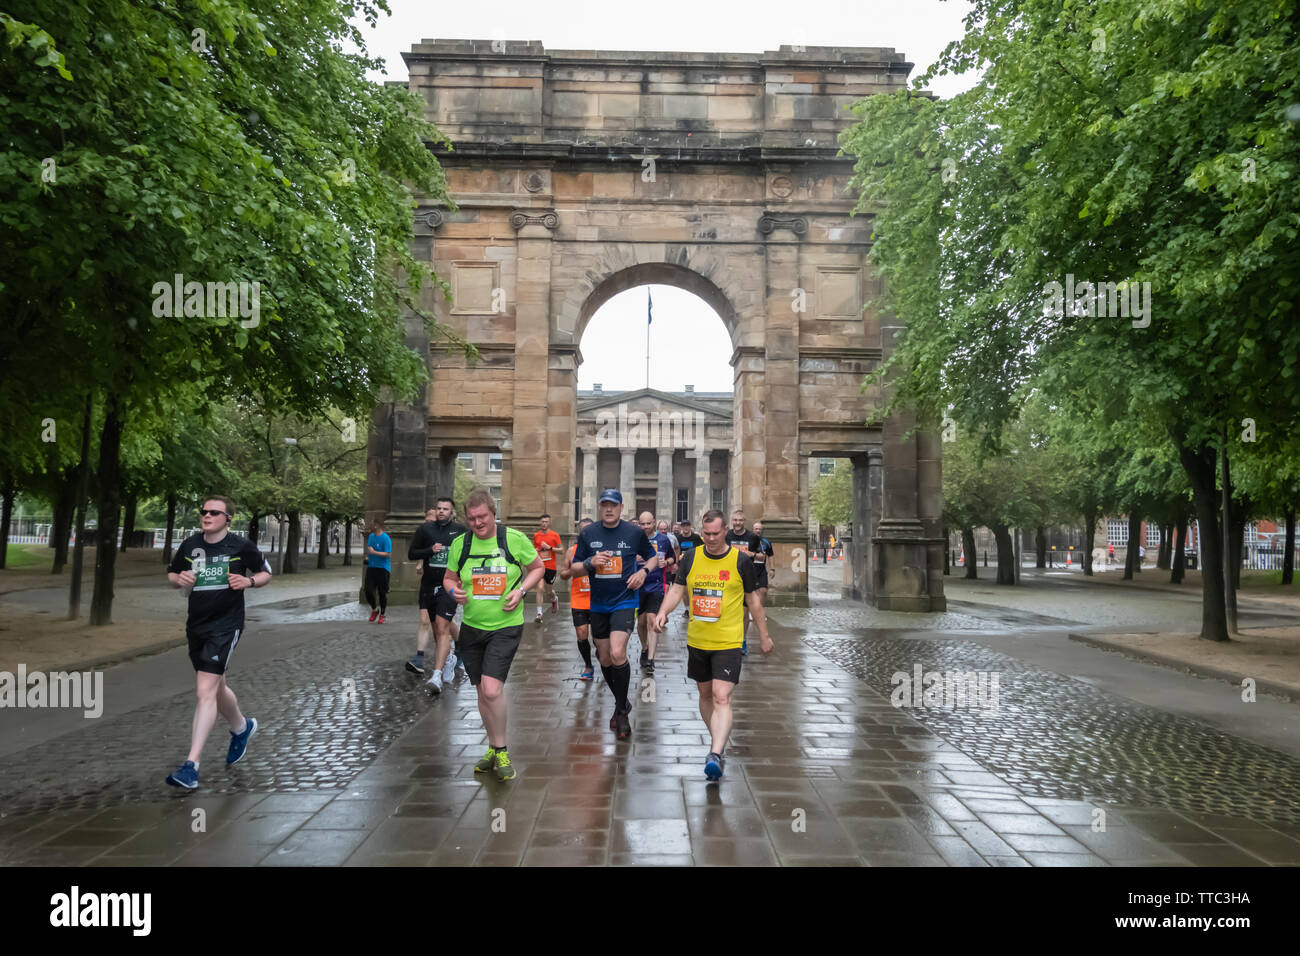 Glasgow, Scotland, UK. 16th June, 2019. Runners arrive at McLennan Arch in Glasgow Green during the Men's 10K Run which has been an annual event since 2004. Thousands of runners take to the streets of the city to get fit, fundraise, and raise awareness of men's health issues. The run coincides with Fathers Day and starts at the Riverside Museum and  finishes at George Square. Credit: Skully/Alamy Live News - Stock Image